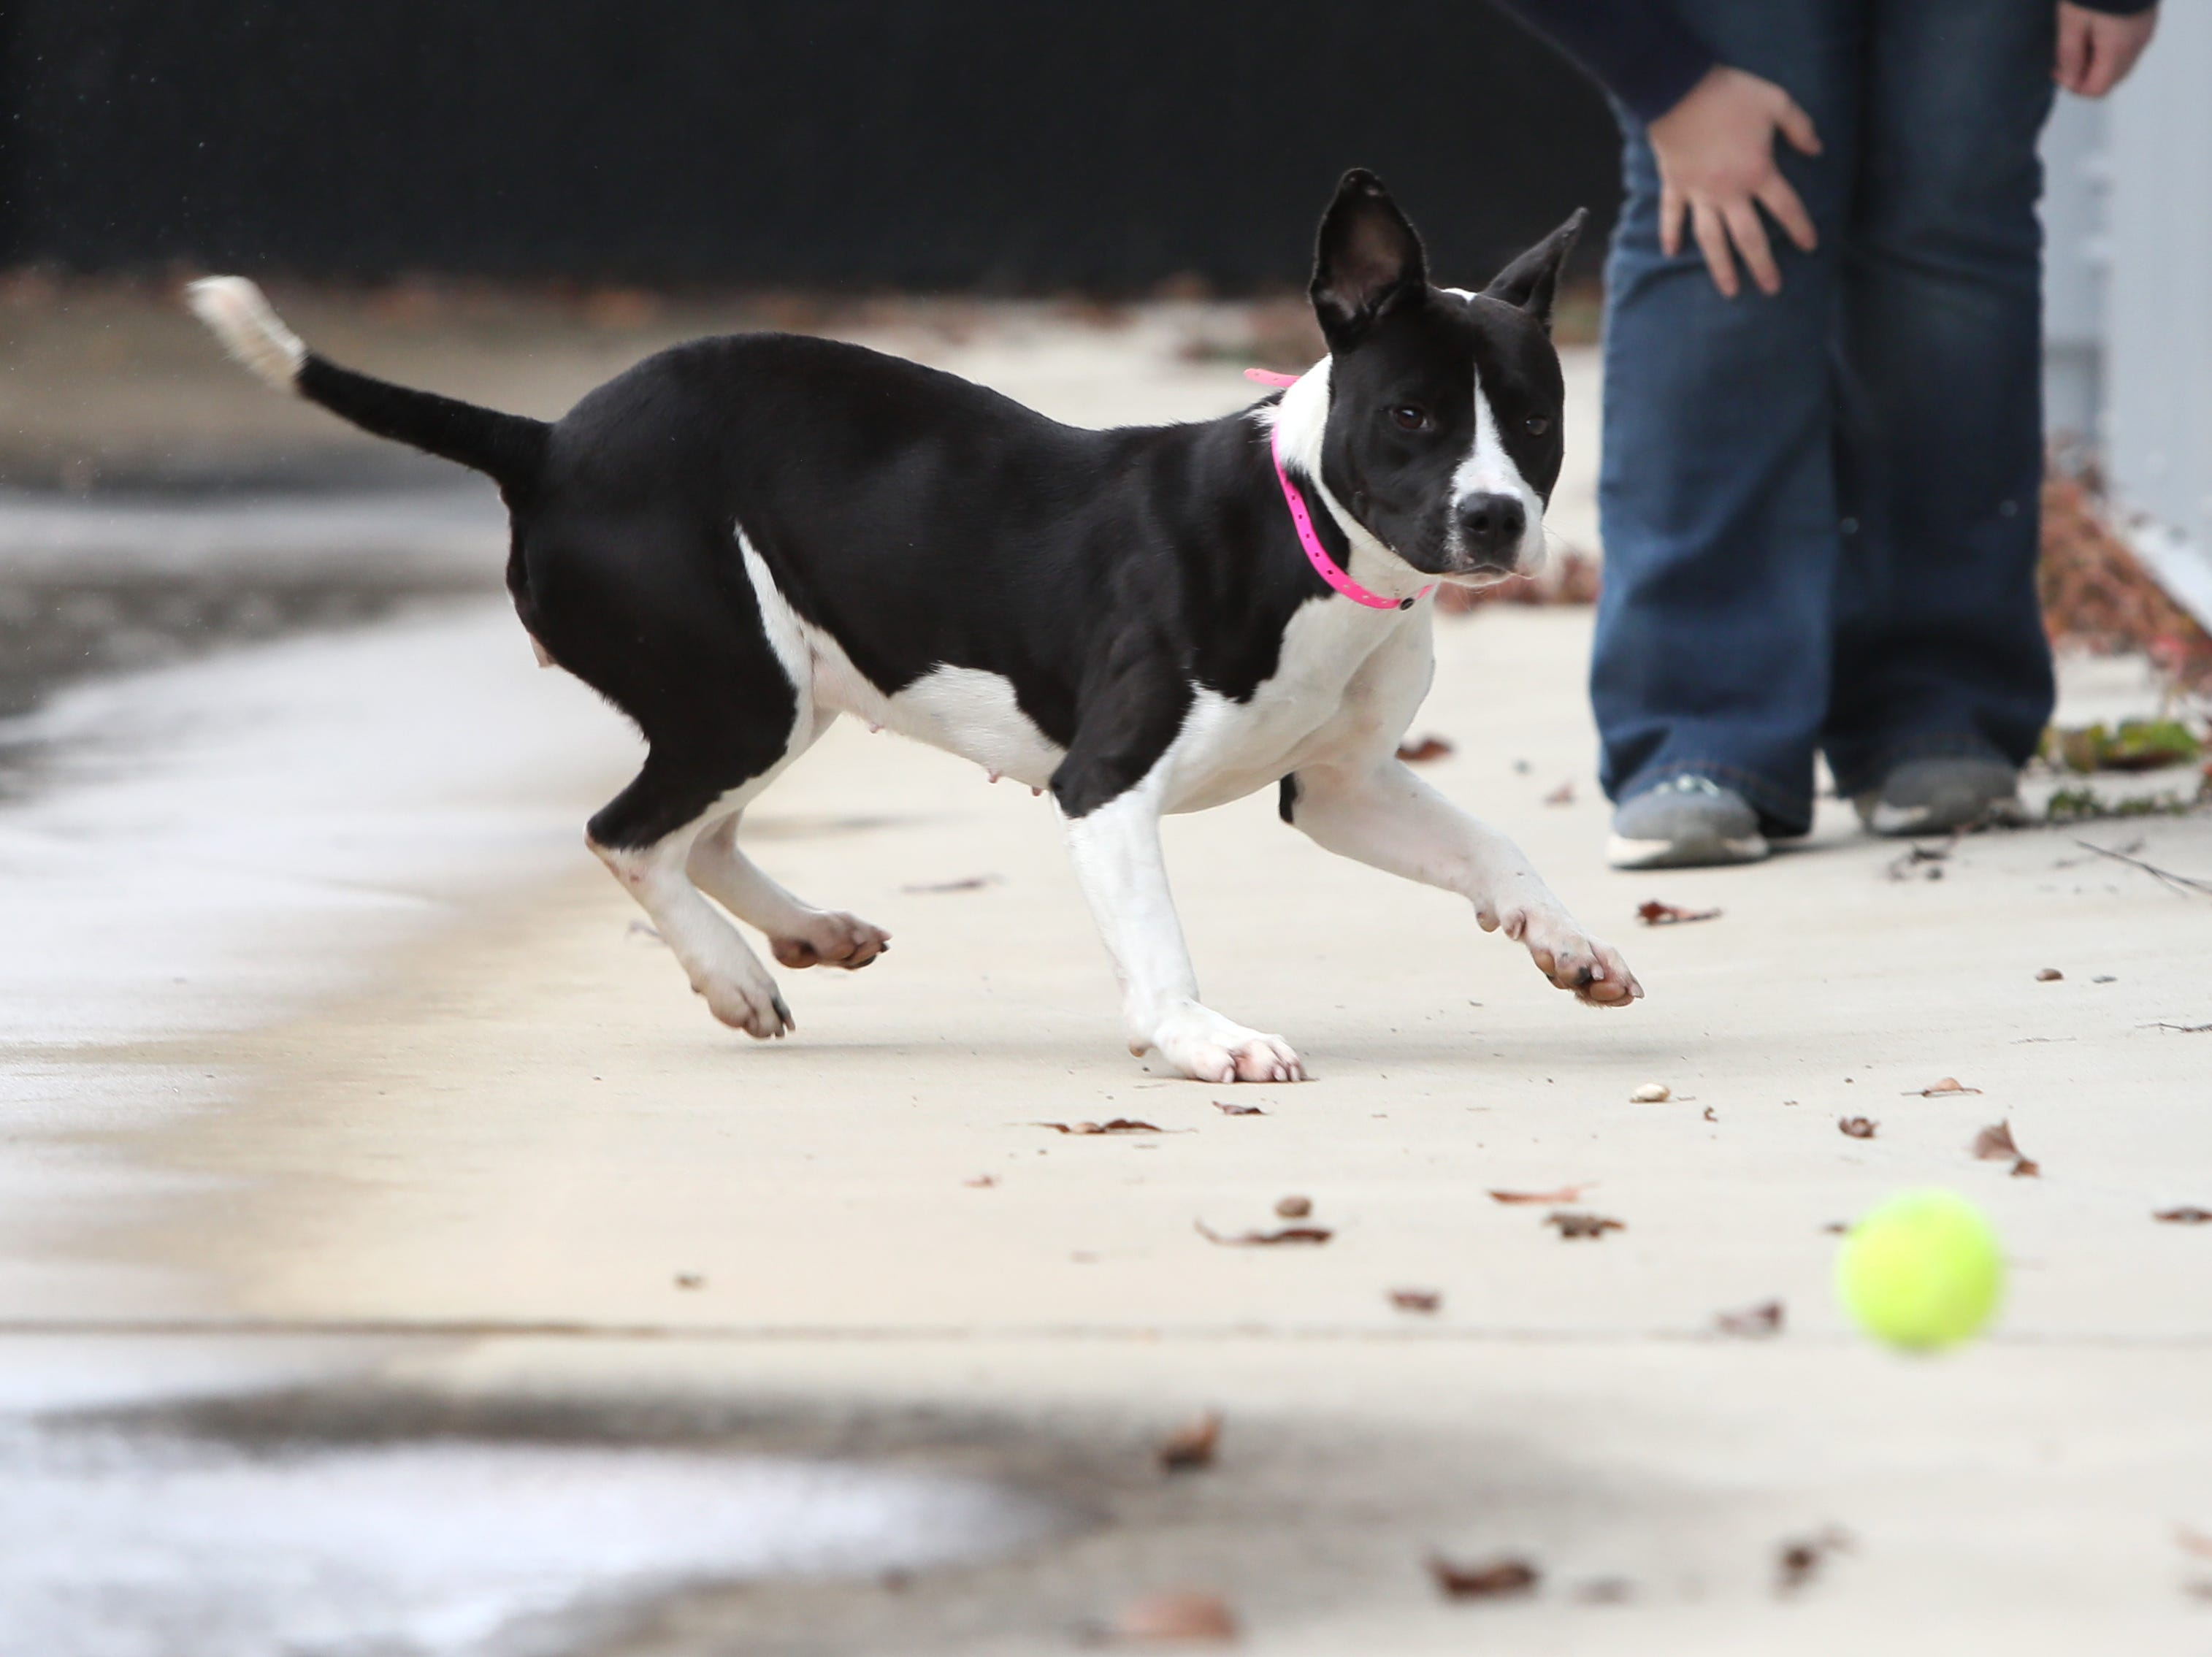 Jada, a 2-year-old female, who is a part of a weekly foster care program at the Memphis Animal Services on November, 14, 2018. The dog foster program aims to find temporary placement for dogs selected each week that are in the at-risk population of the shelter.